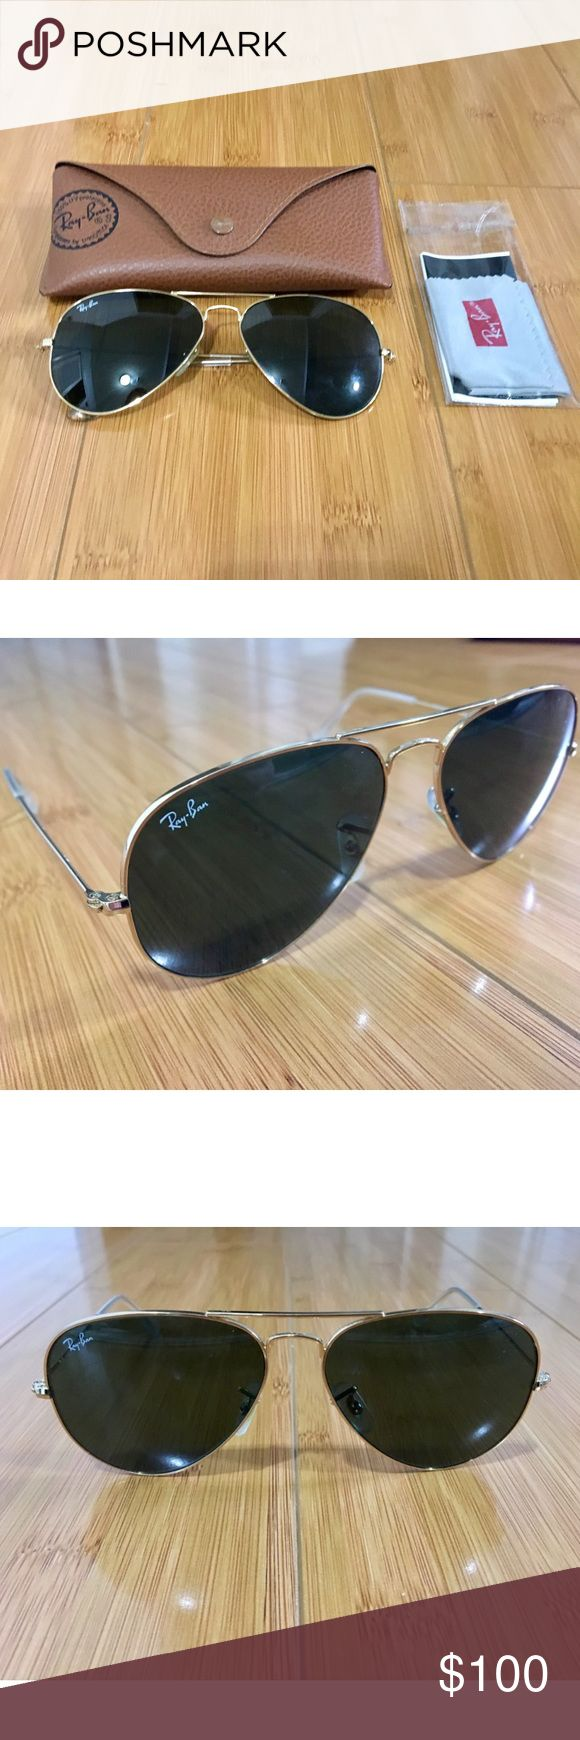 Classic Ray Ban Gold Aviator Sunglasses Brand new, never used. Comes with original case and microfiber cloth. Ray-Ban Accessories Sunglasses